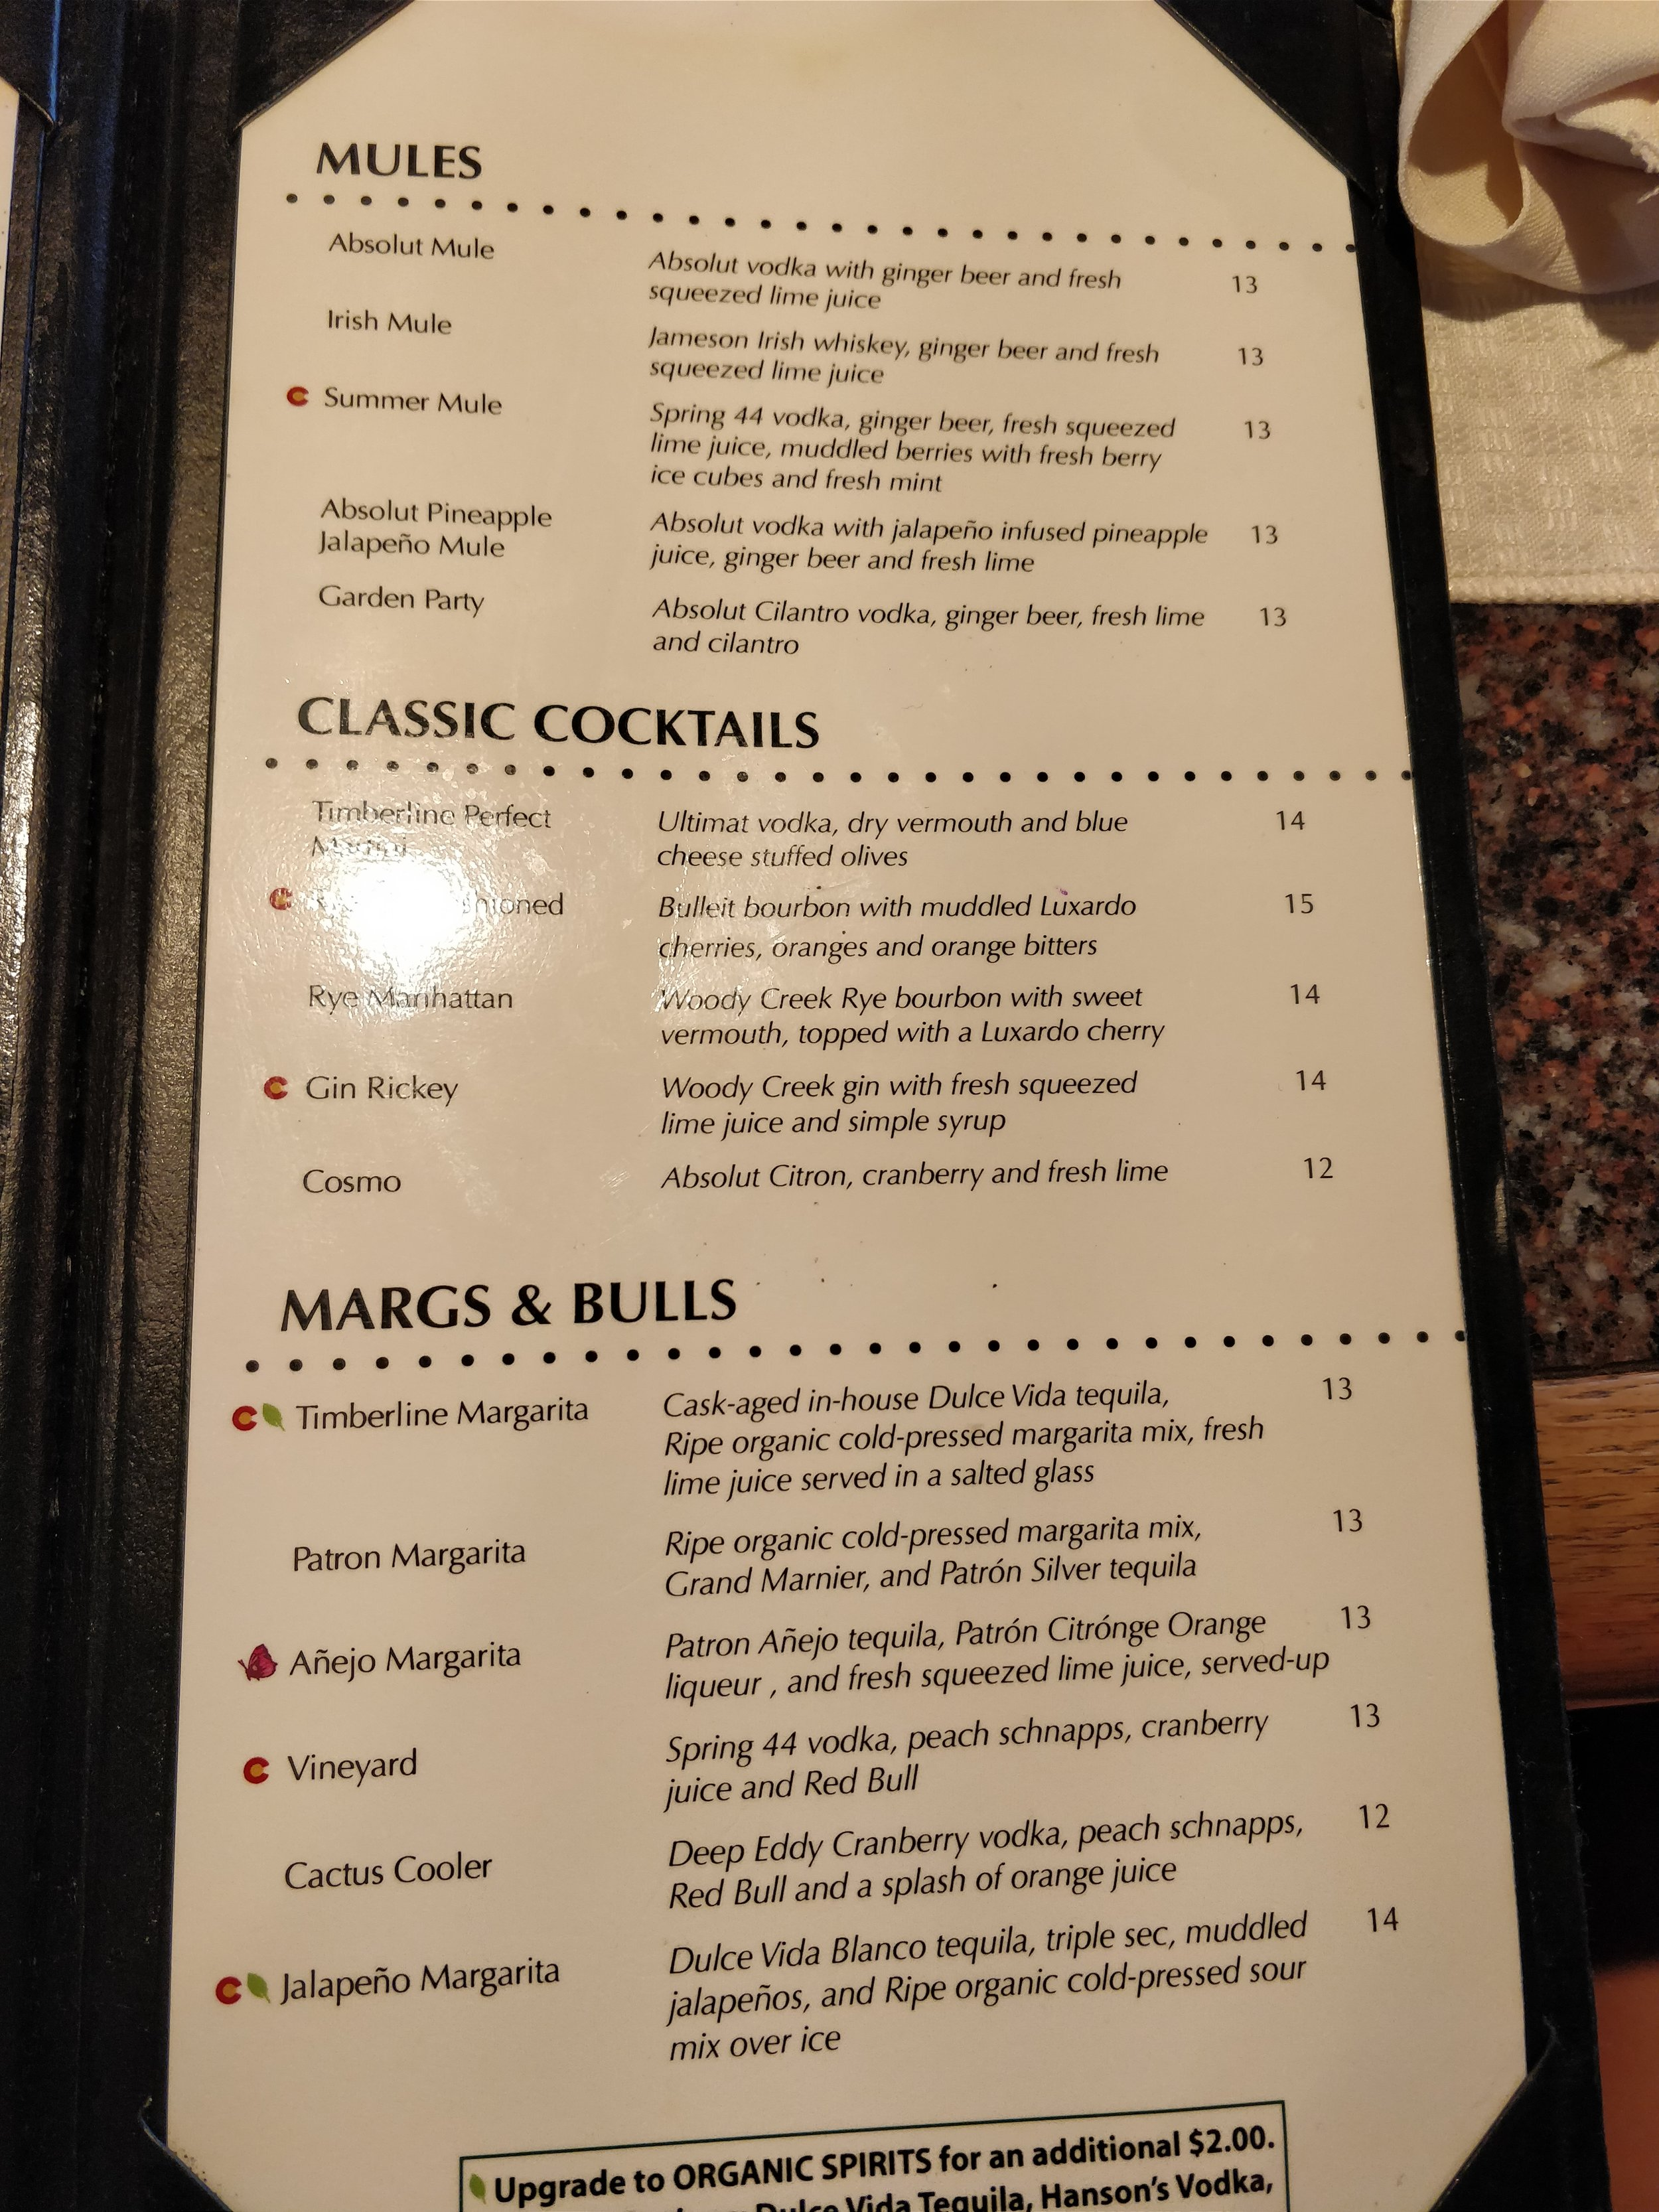 mules, cocktails, margs & bulls